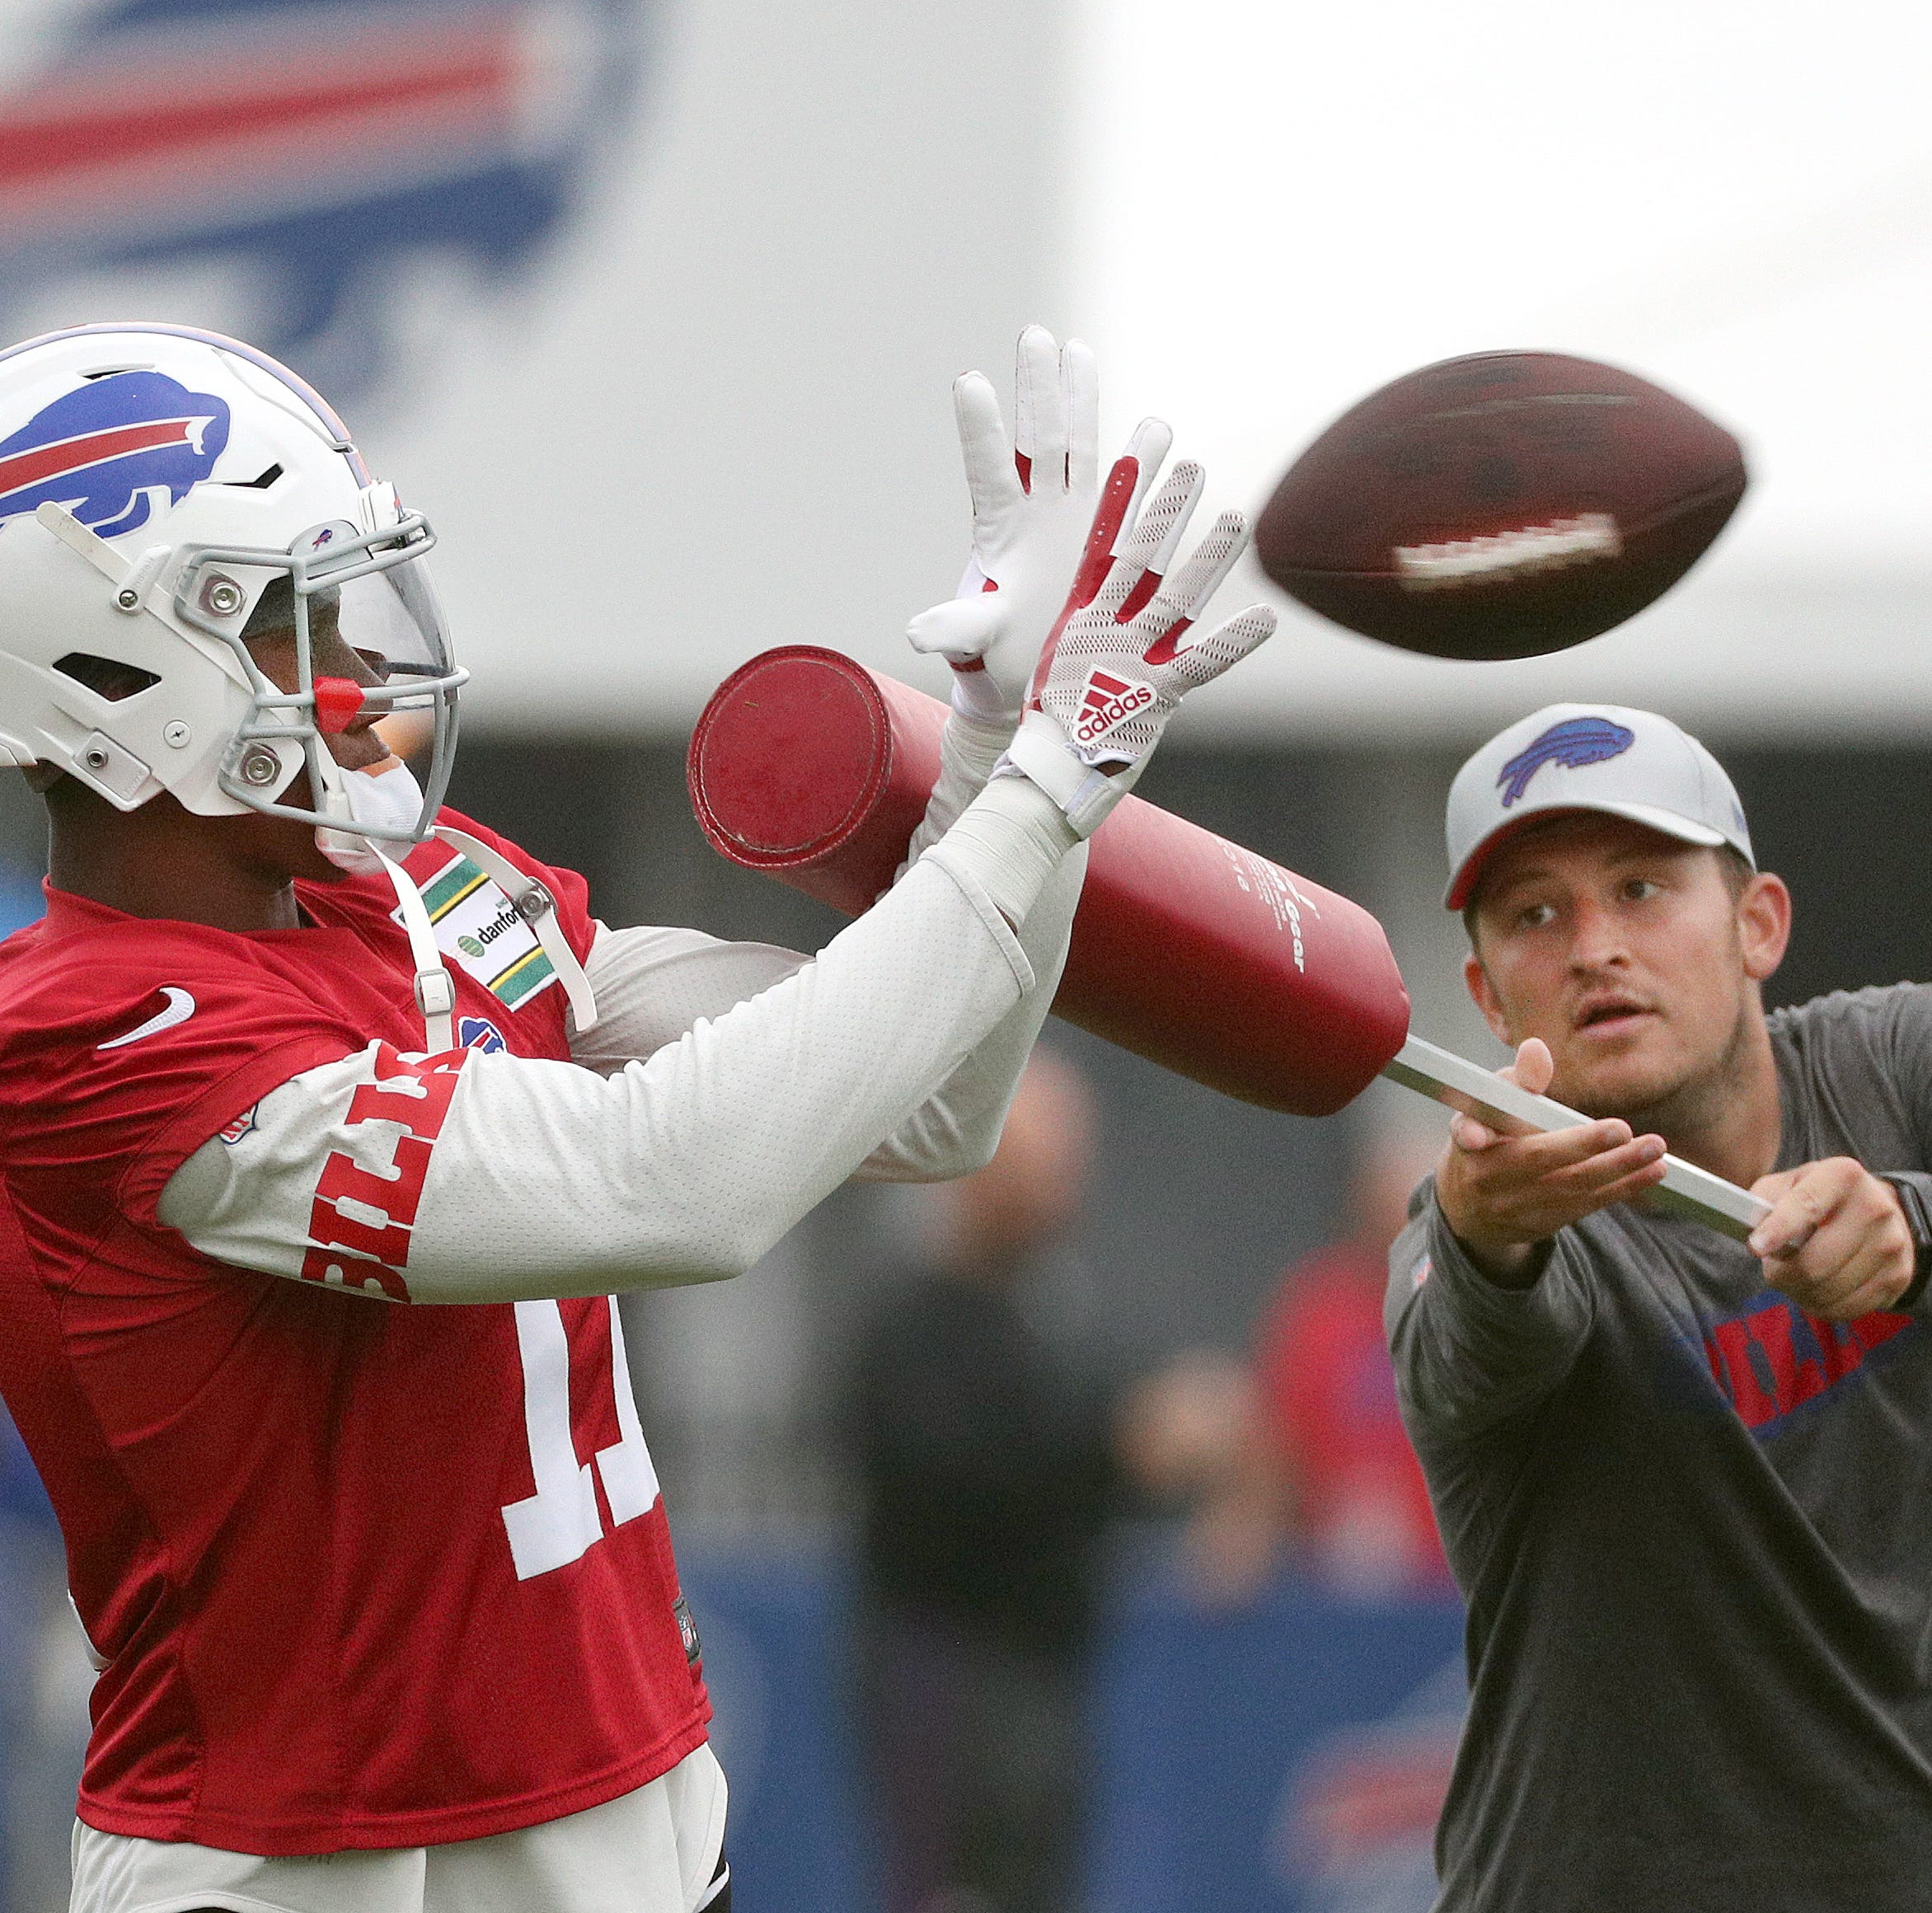 Cleared for contact, Bills' WR Zay Jones in a feisty mood